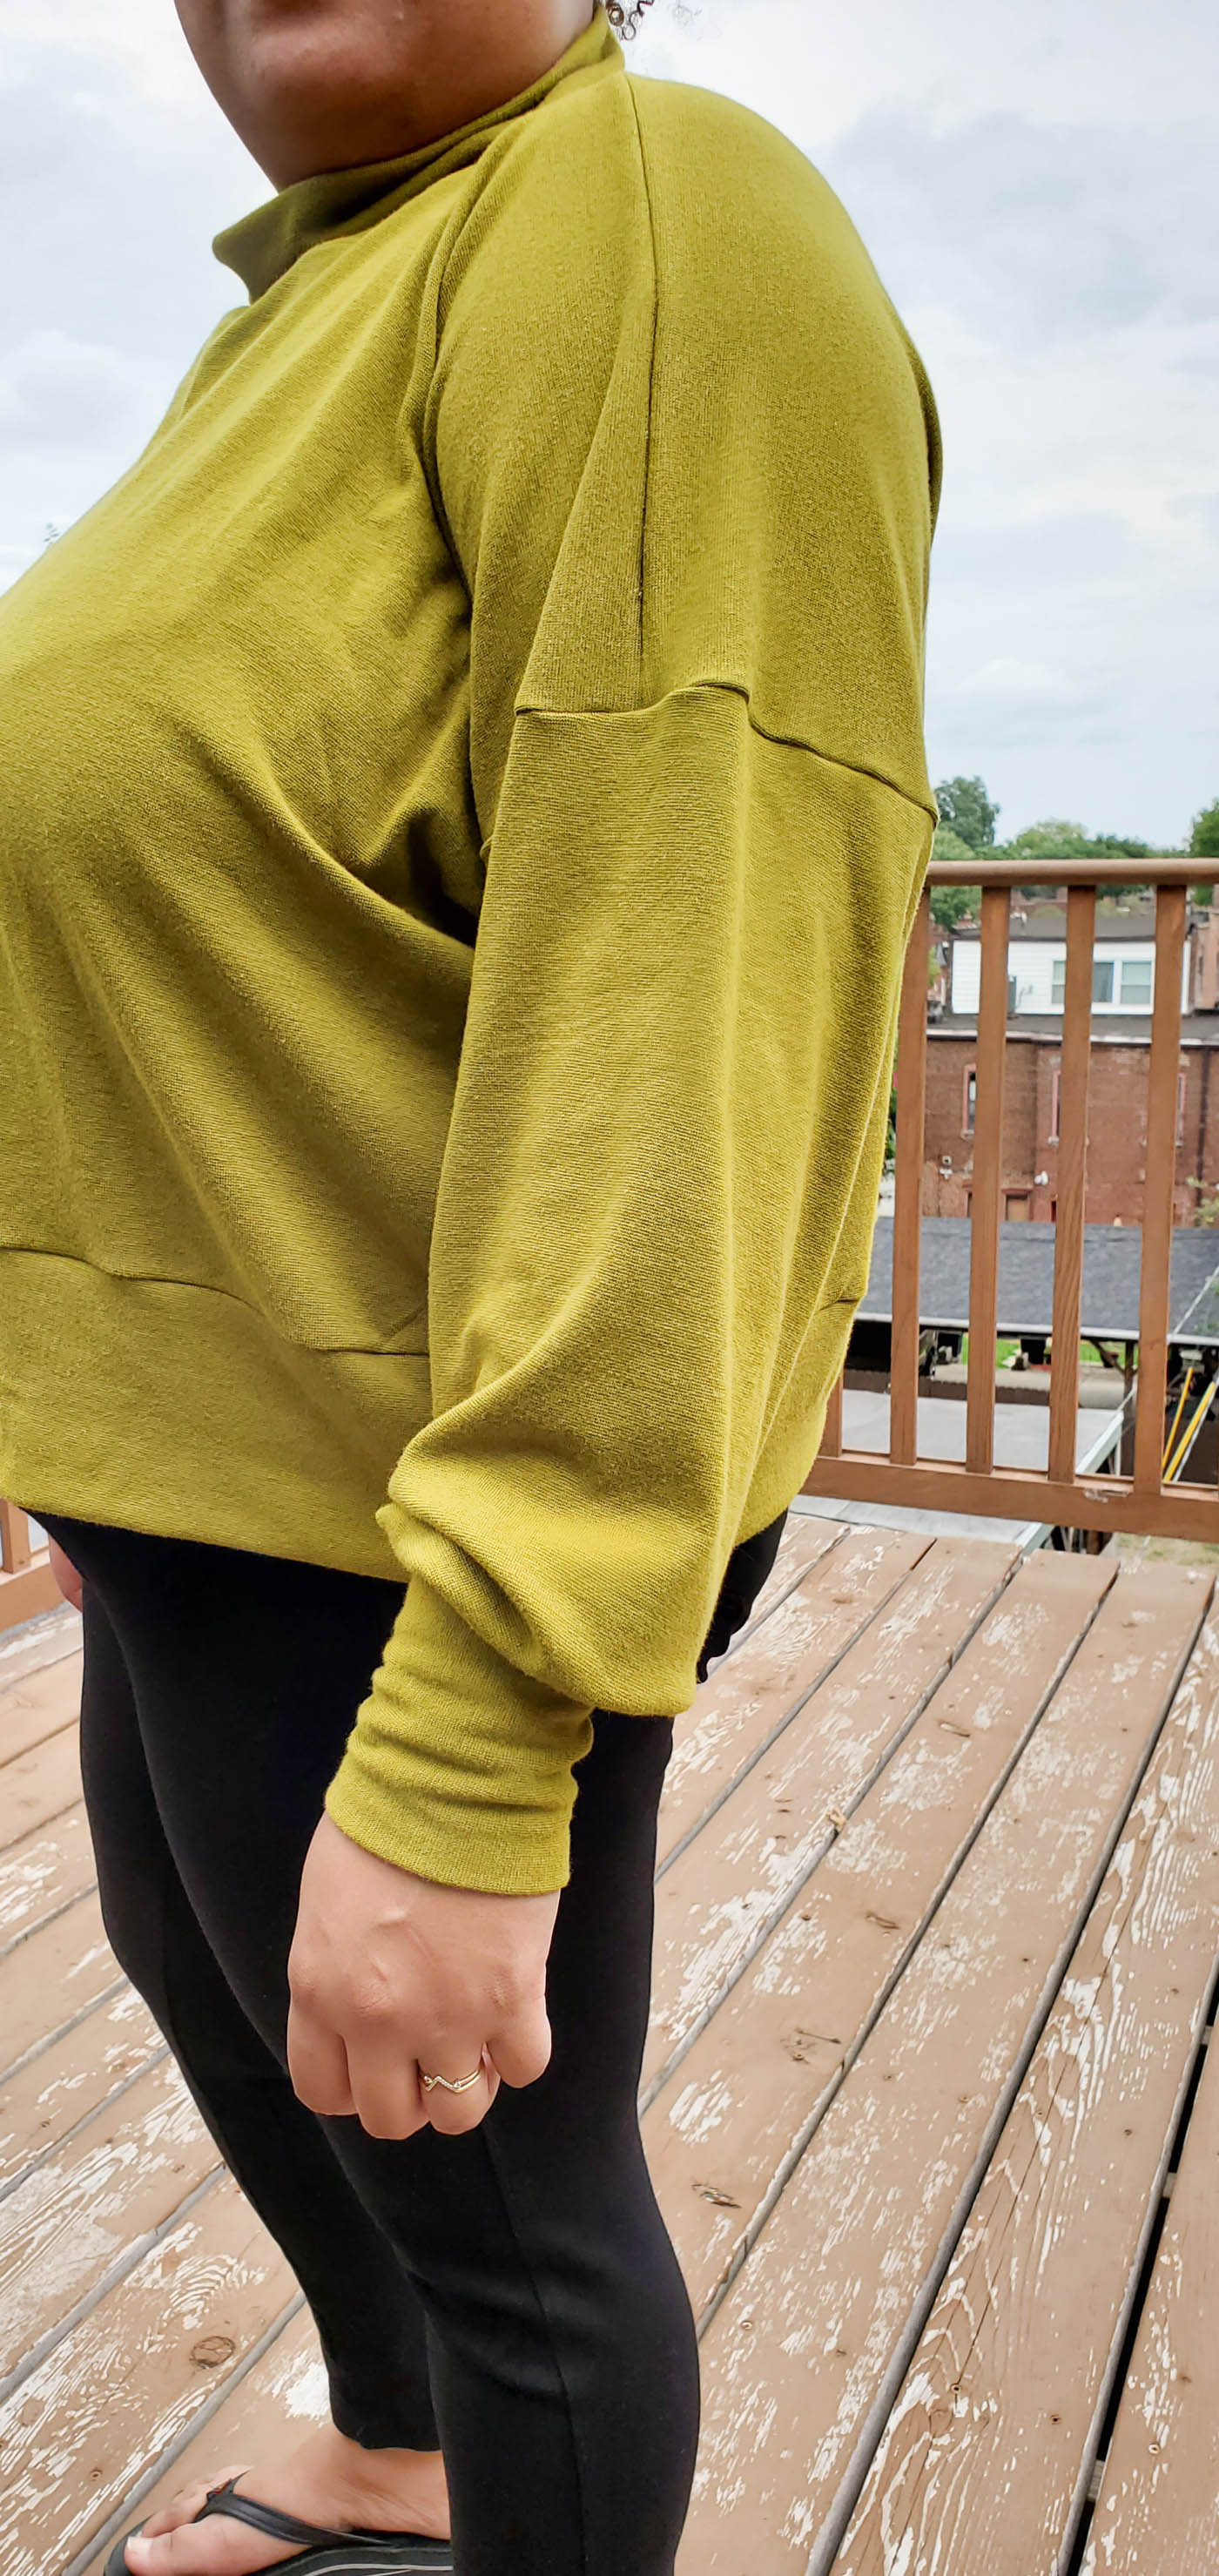 Women wearing a Hosta Tee long sleeve in Bamboo Cotton Stretch Rib in Chartreuse and black jeans, standing sideways to the camera.  Detail photograph of the shoulder and sleeve of the shirt.